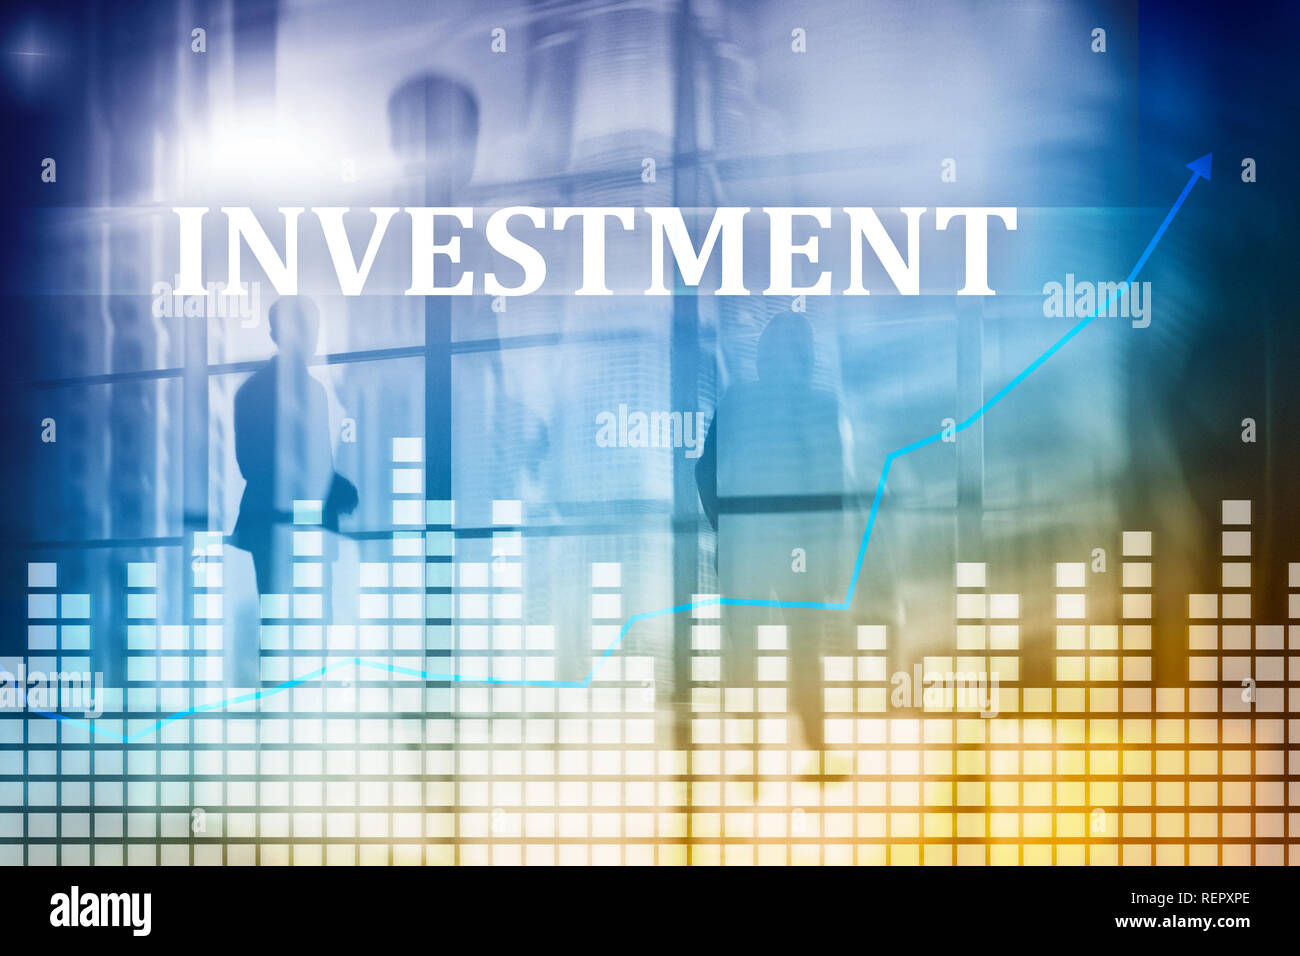 Investment, ROI, financial market concept. Double exposure . - Stock Image